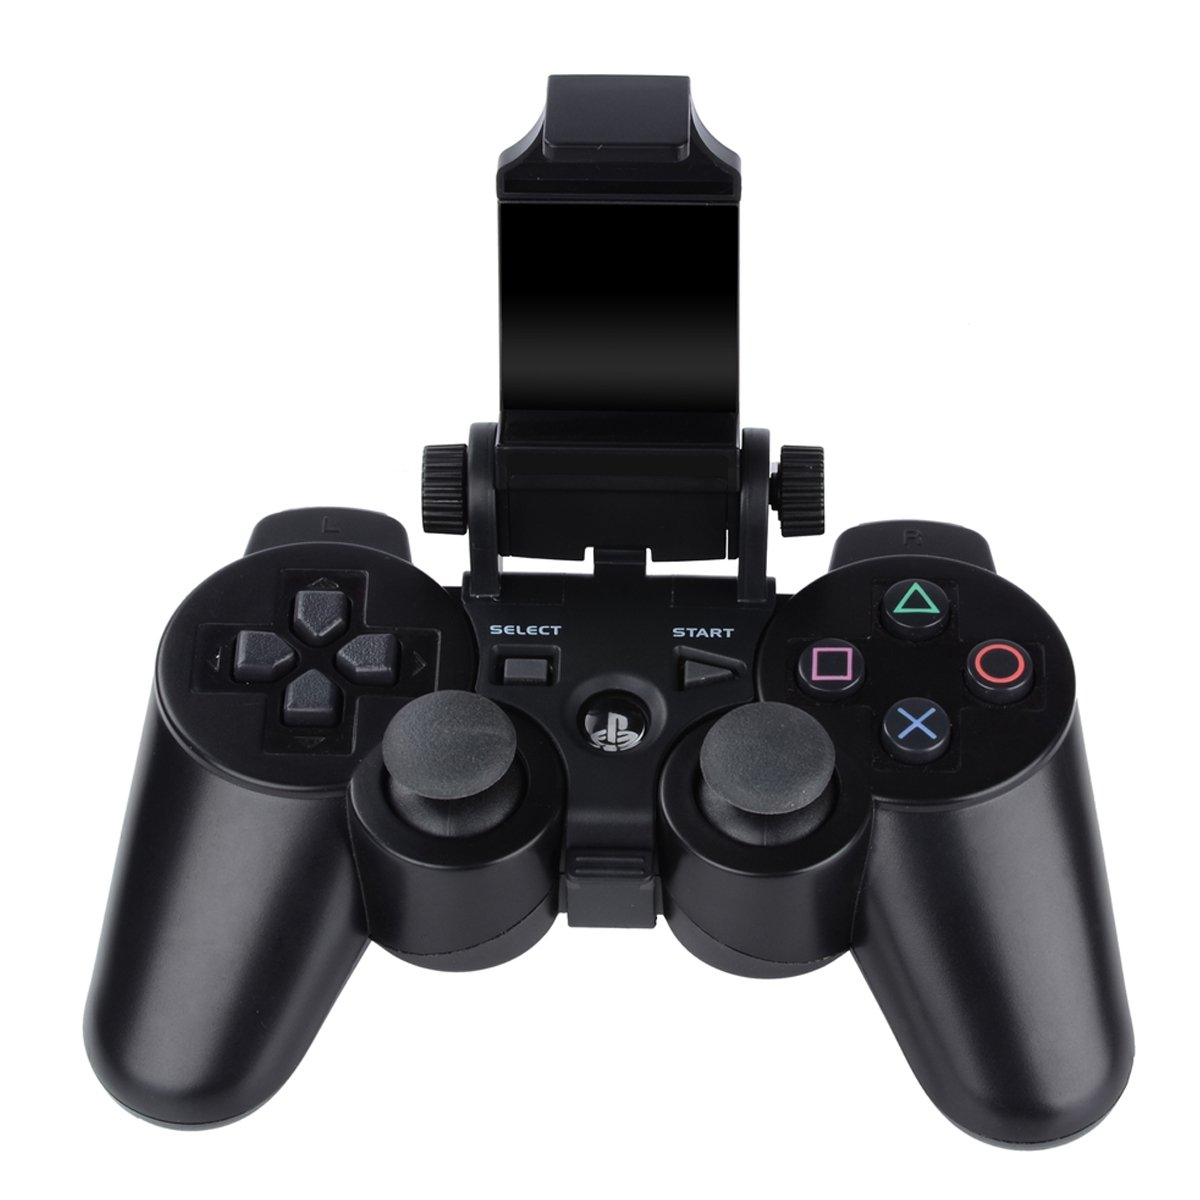 PS3 Controller Phone Mount, Megadream 180 Degree Adjustable Android Smartphone Game Clip Bracket Holder for Playstation PS3, Samsung Galaxy, HTC One, LG, Sony Xperia, Moto with D-pad Cap by Megadream